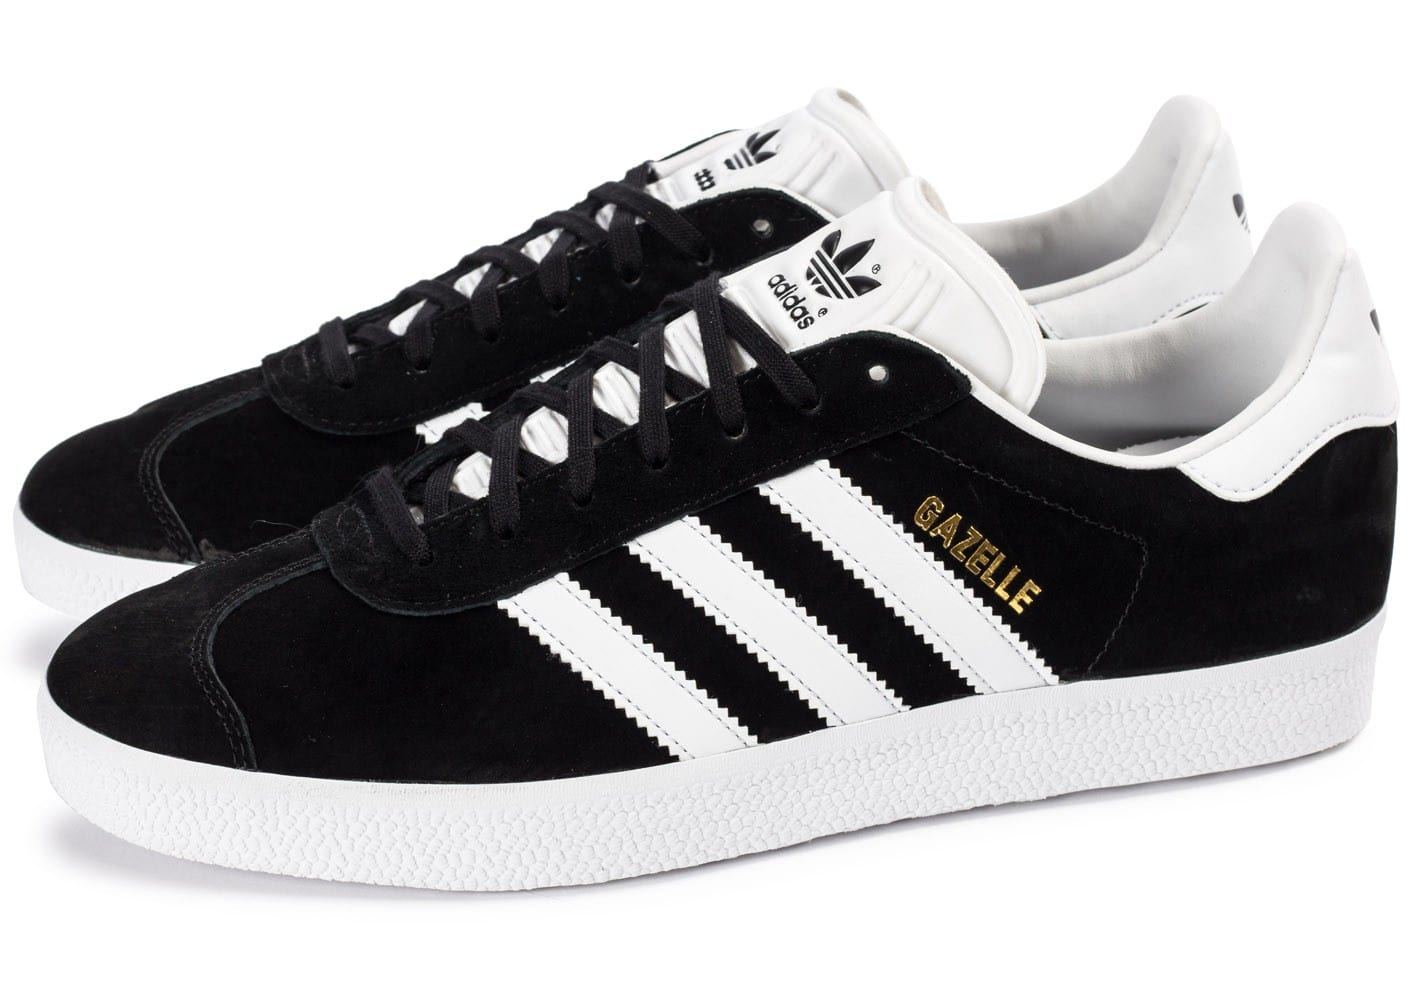 Noir Adidas Originals Gazelle Baskets Avec Bandes En